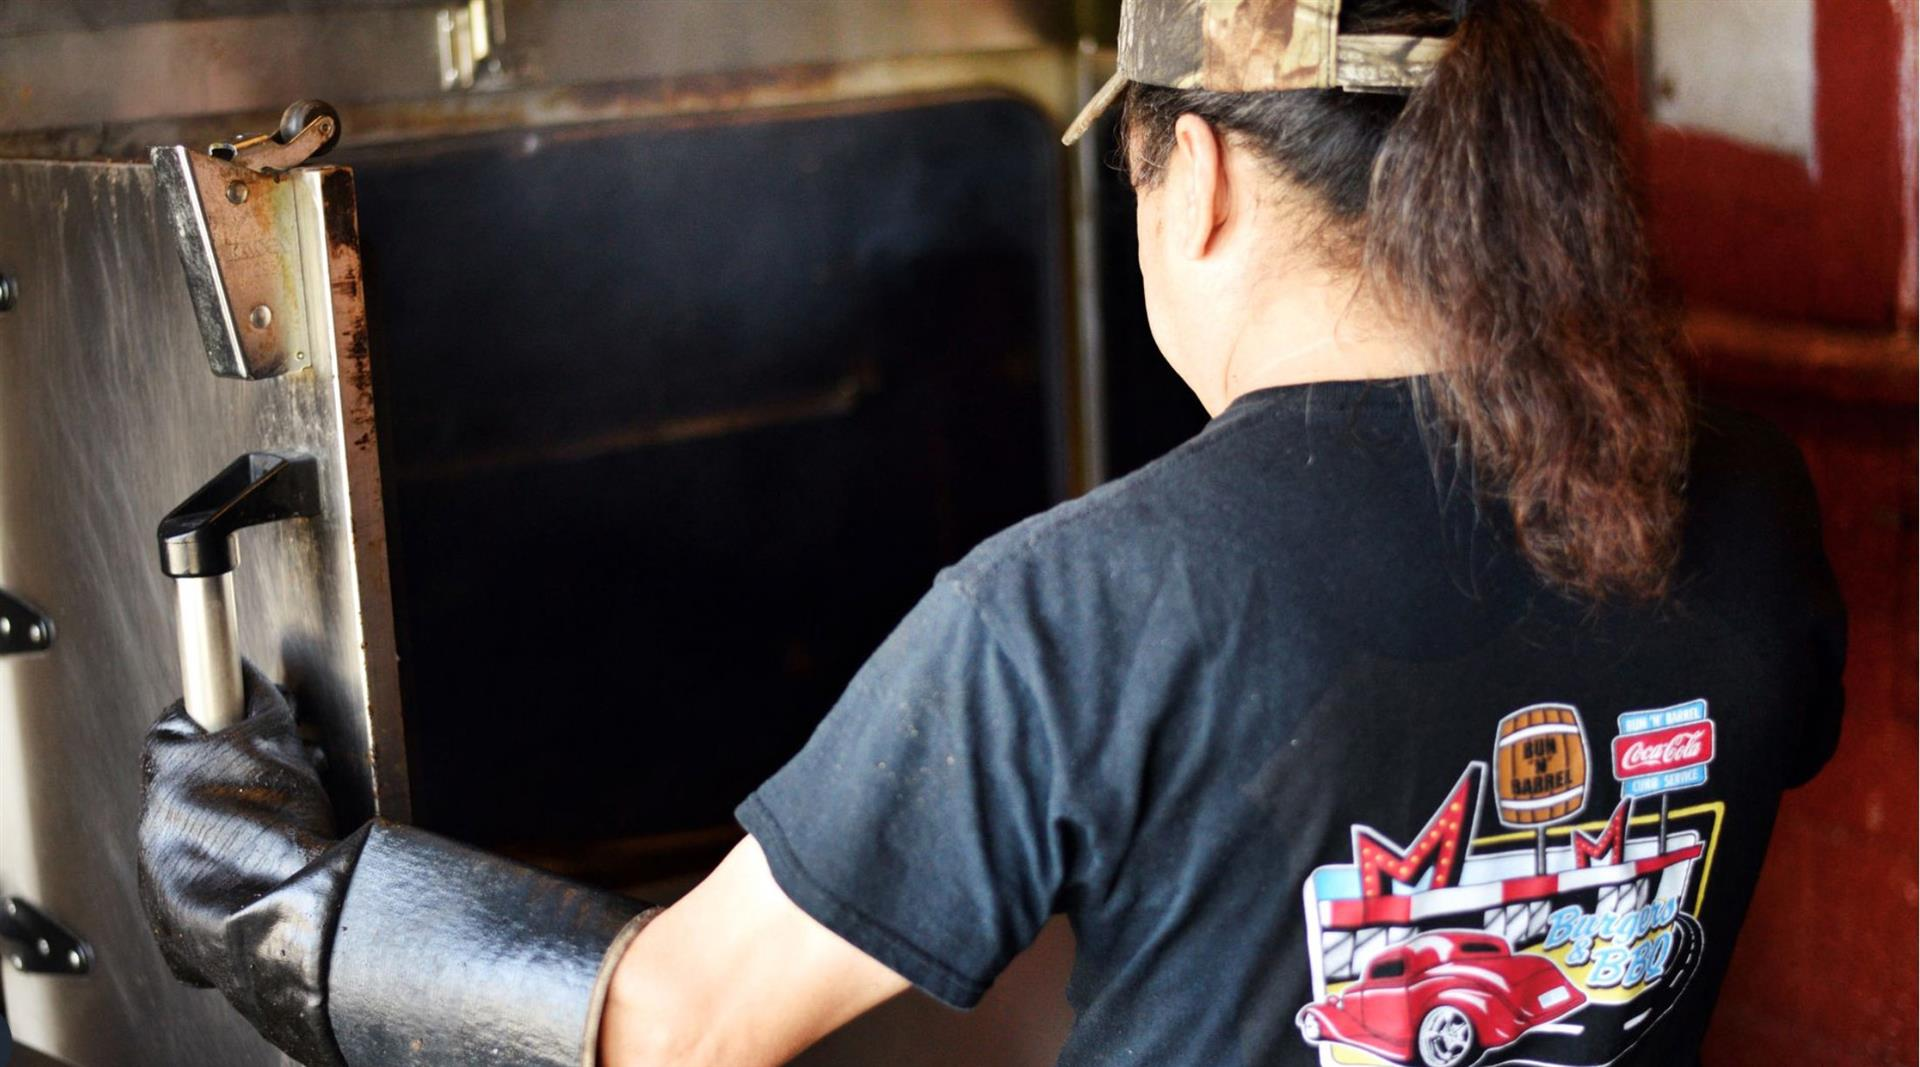 A staff member opening the oven in the BBQ pit kitchen